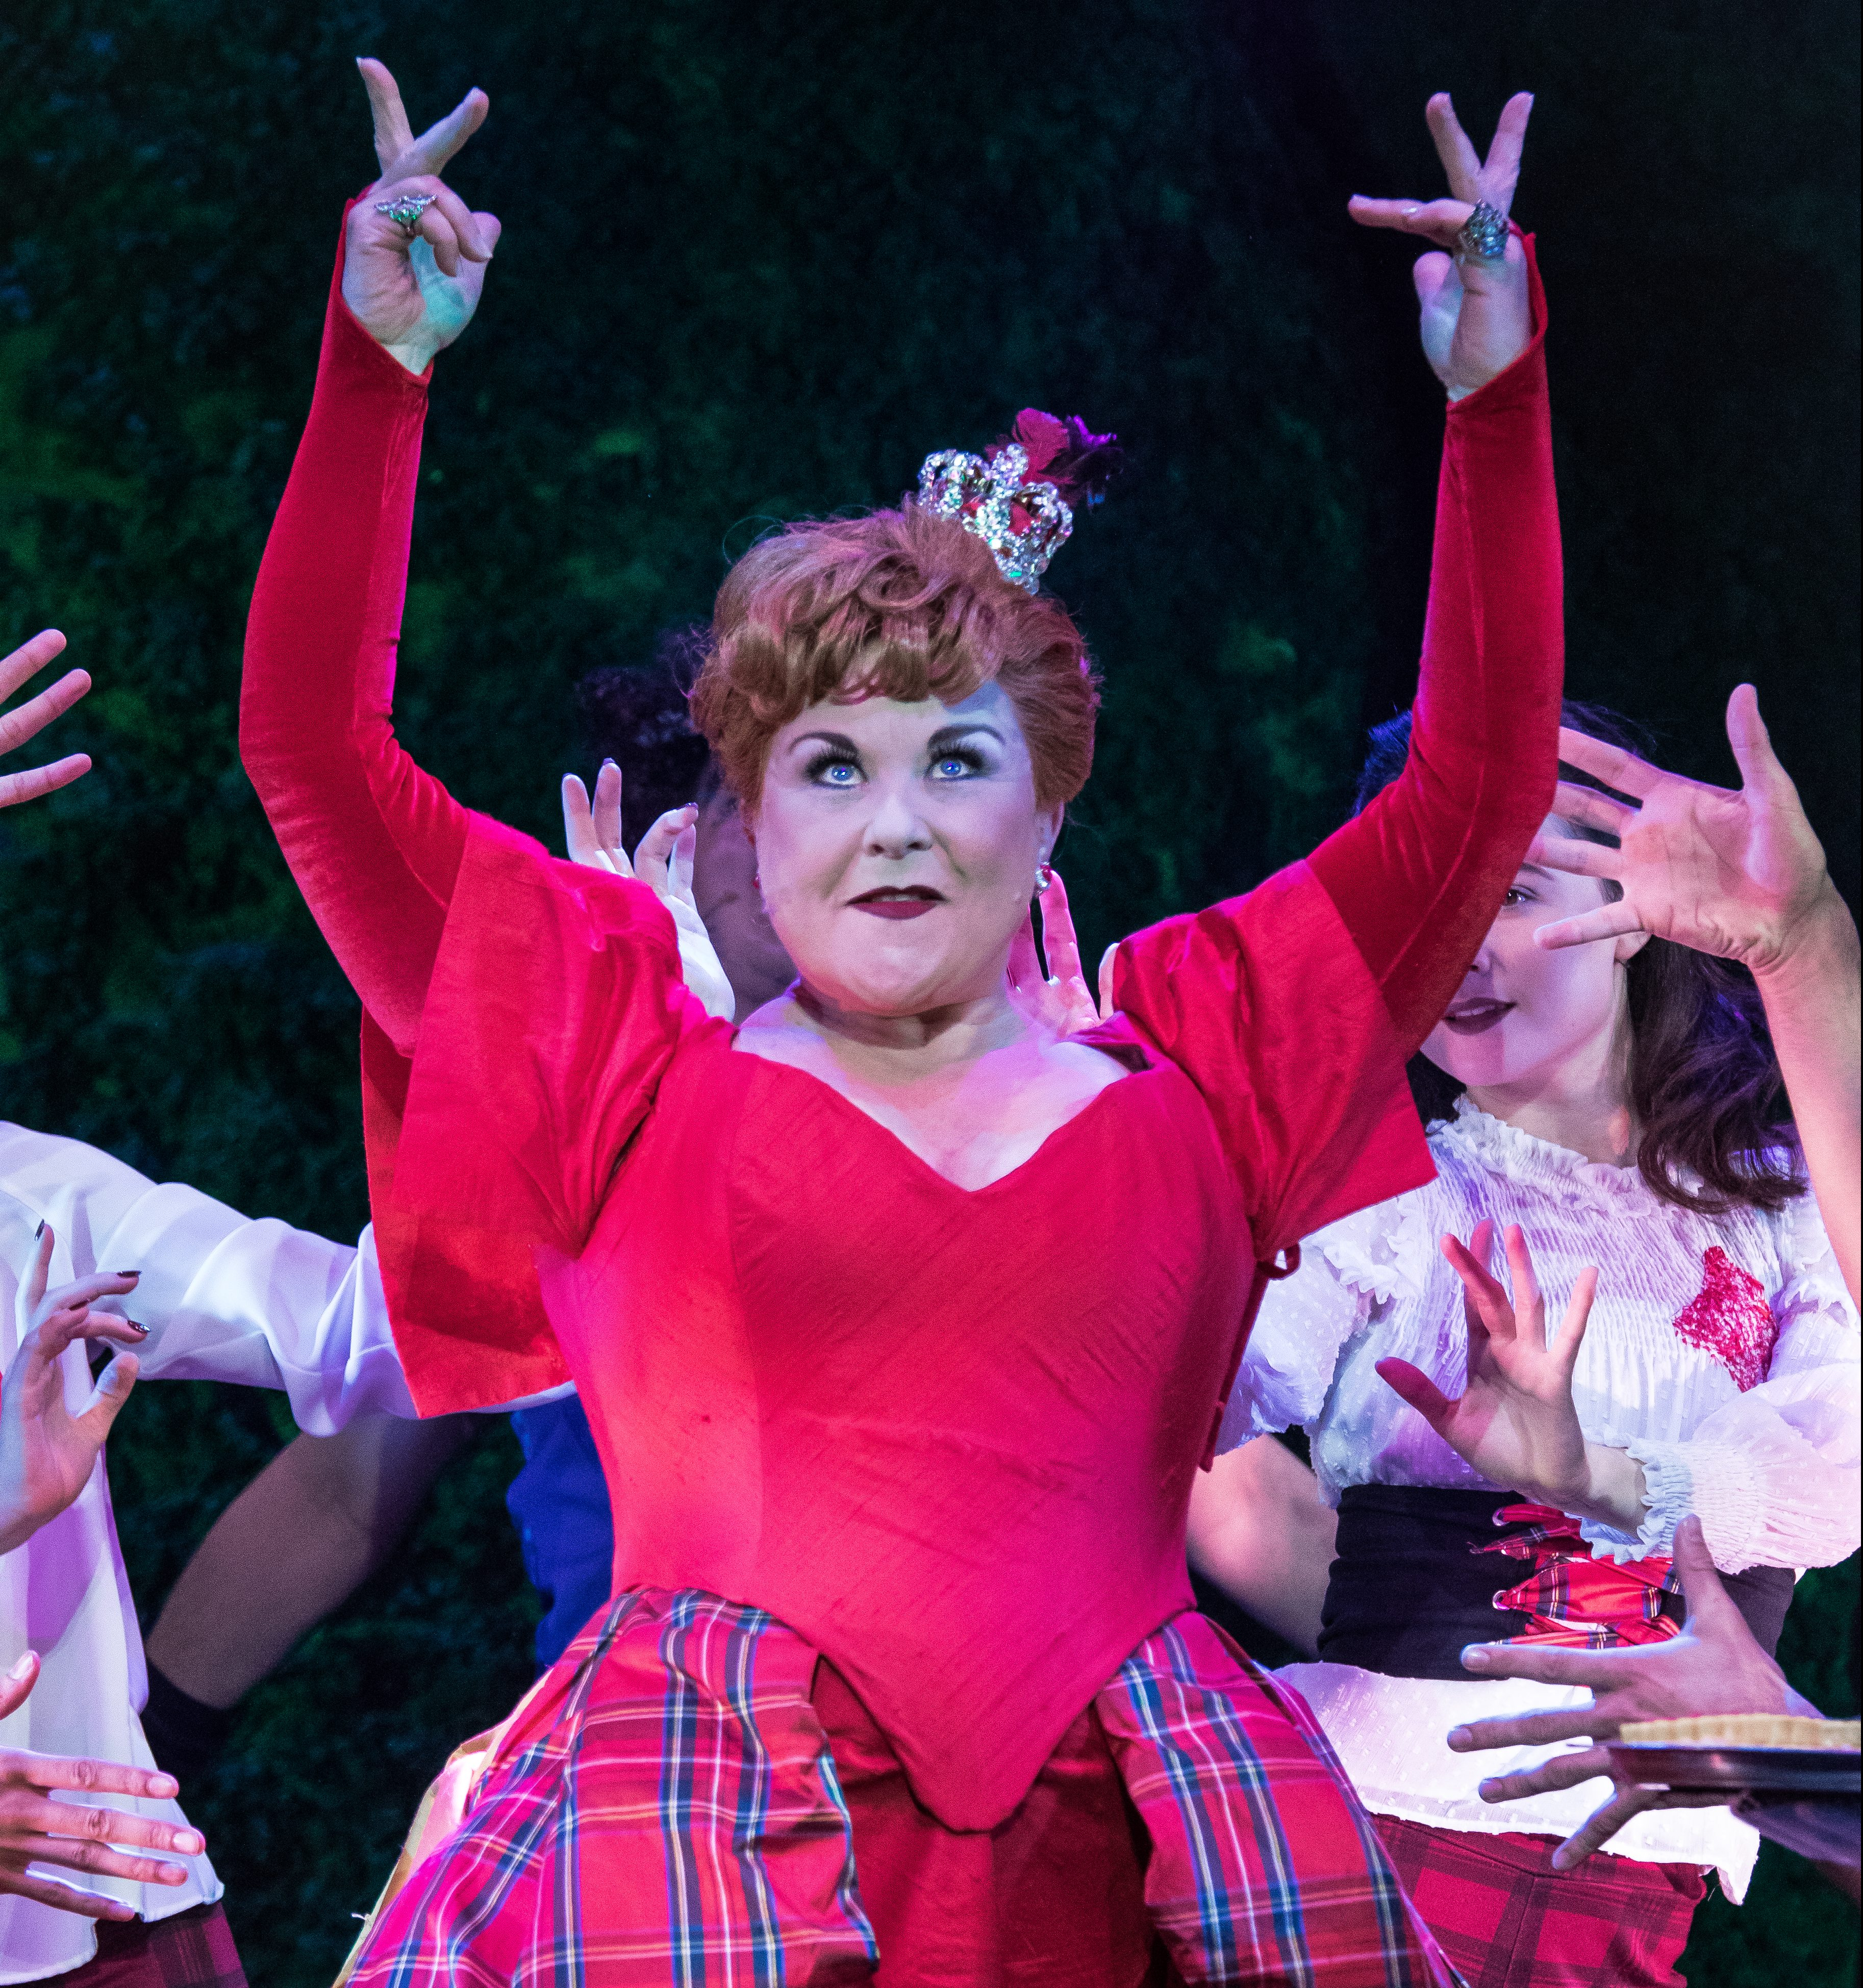 Former Coronation Street actress Wendi Peters as the Queen of Hearts in Wonderland.